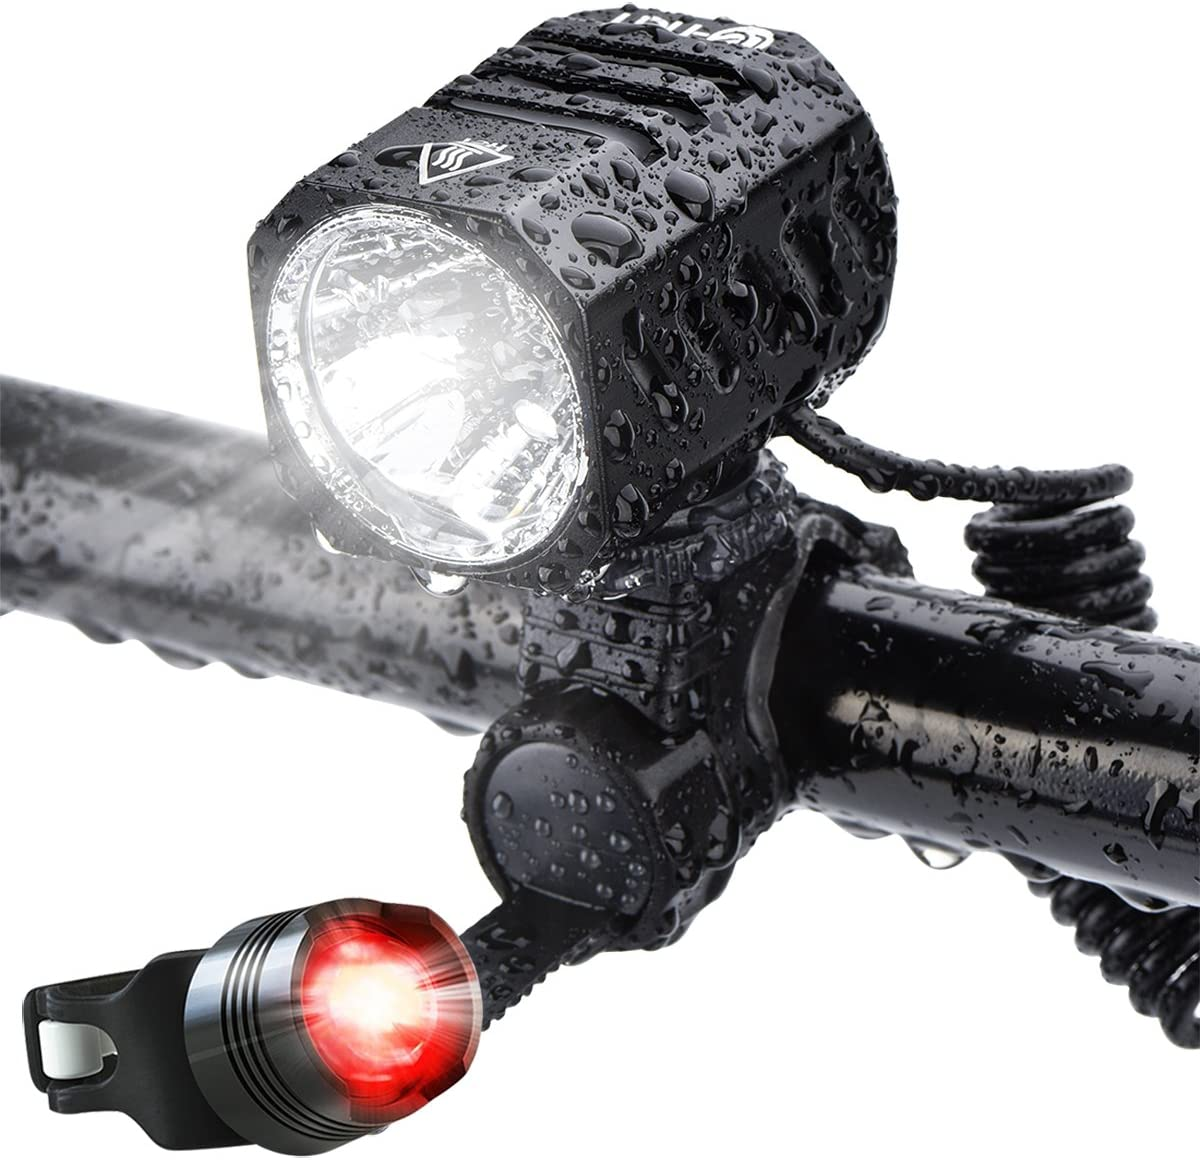 MTB Rechargeale Bike LED Front Light Cycling Headlamp Road Bicycle Headlight